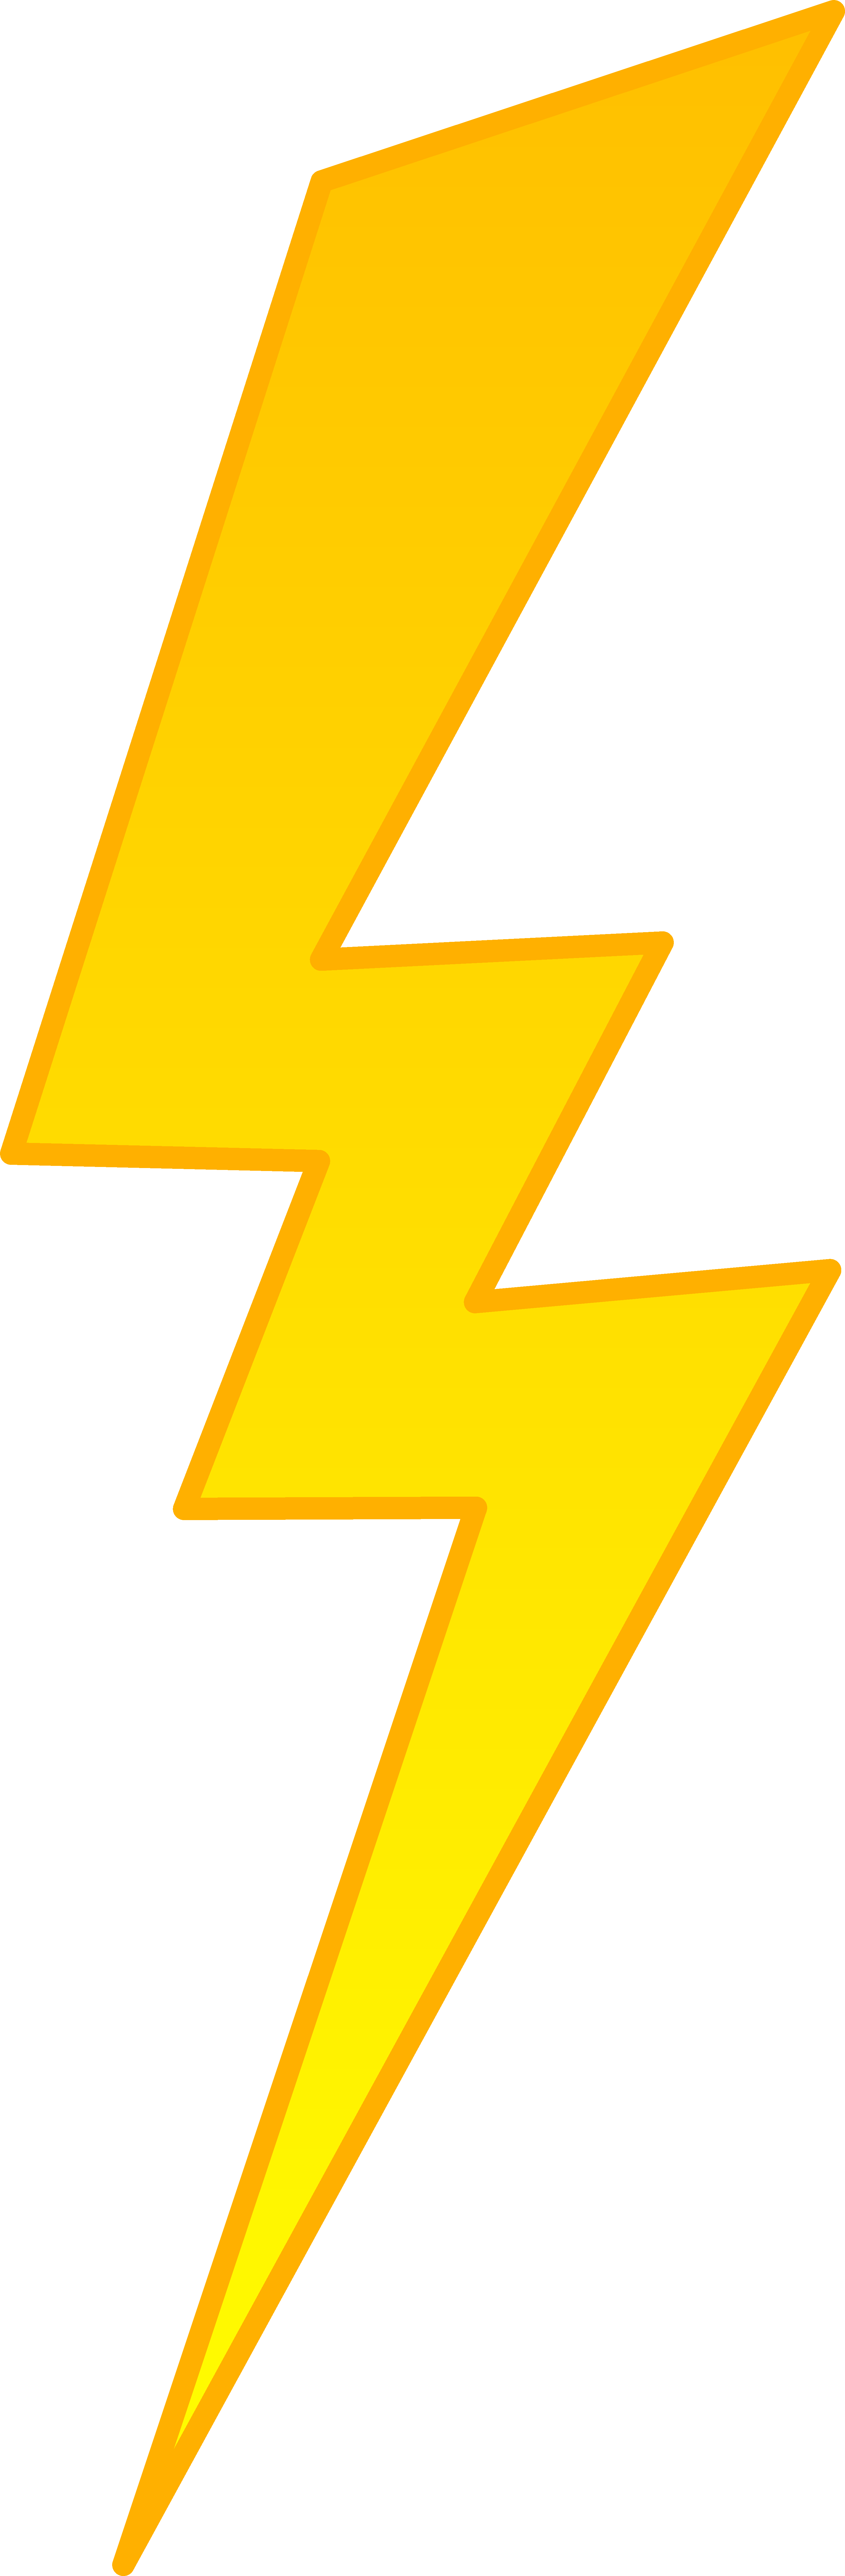 Electric clipart lighting bolt. Free lightning pictures clipartix